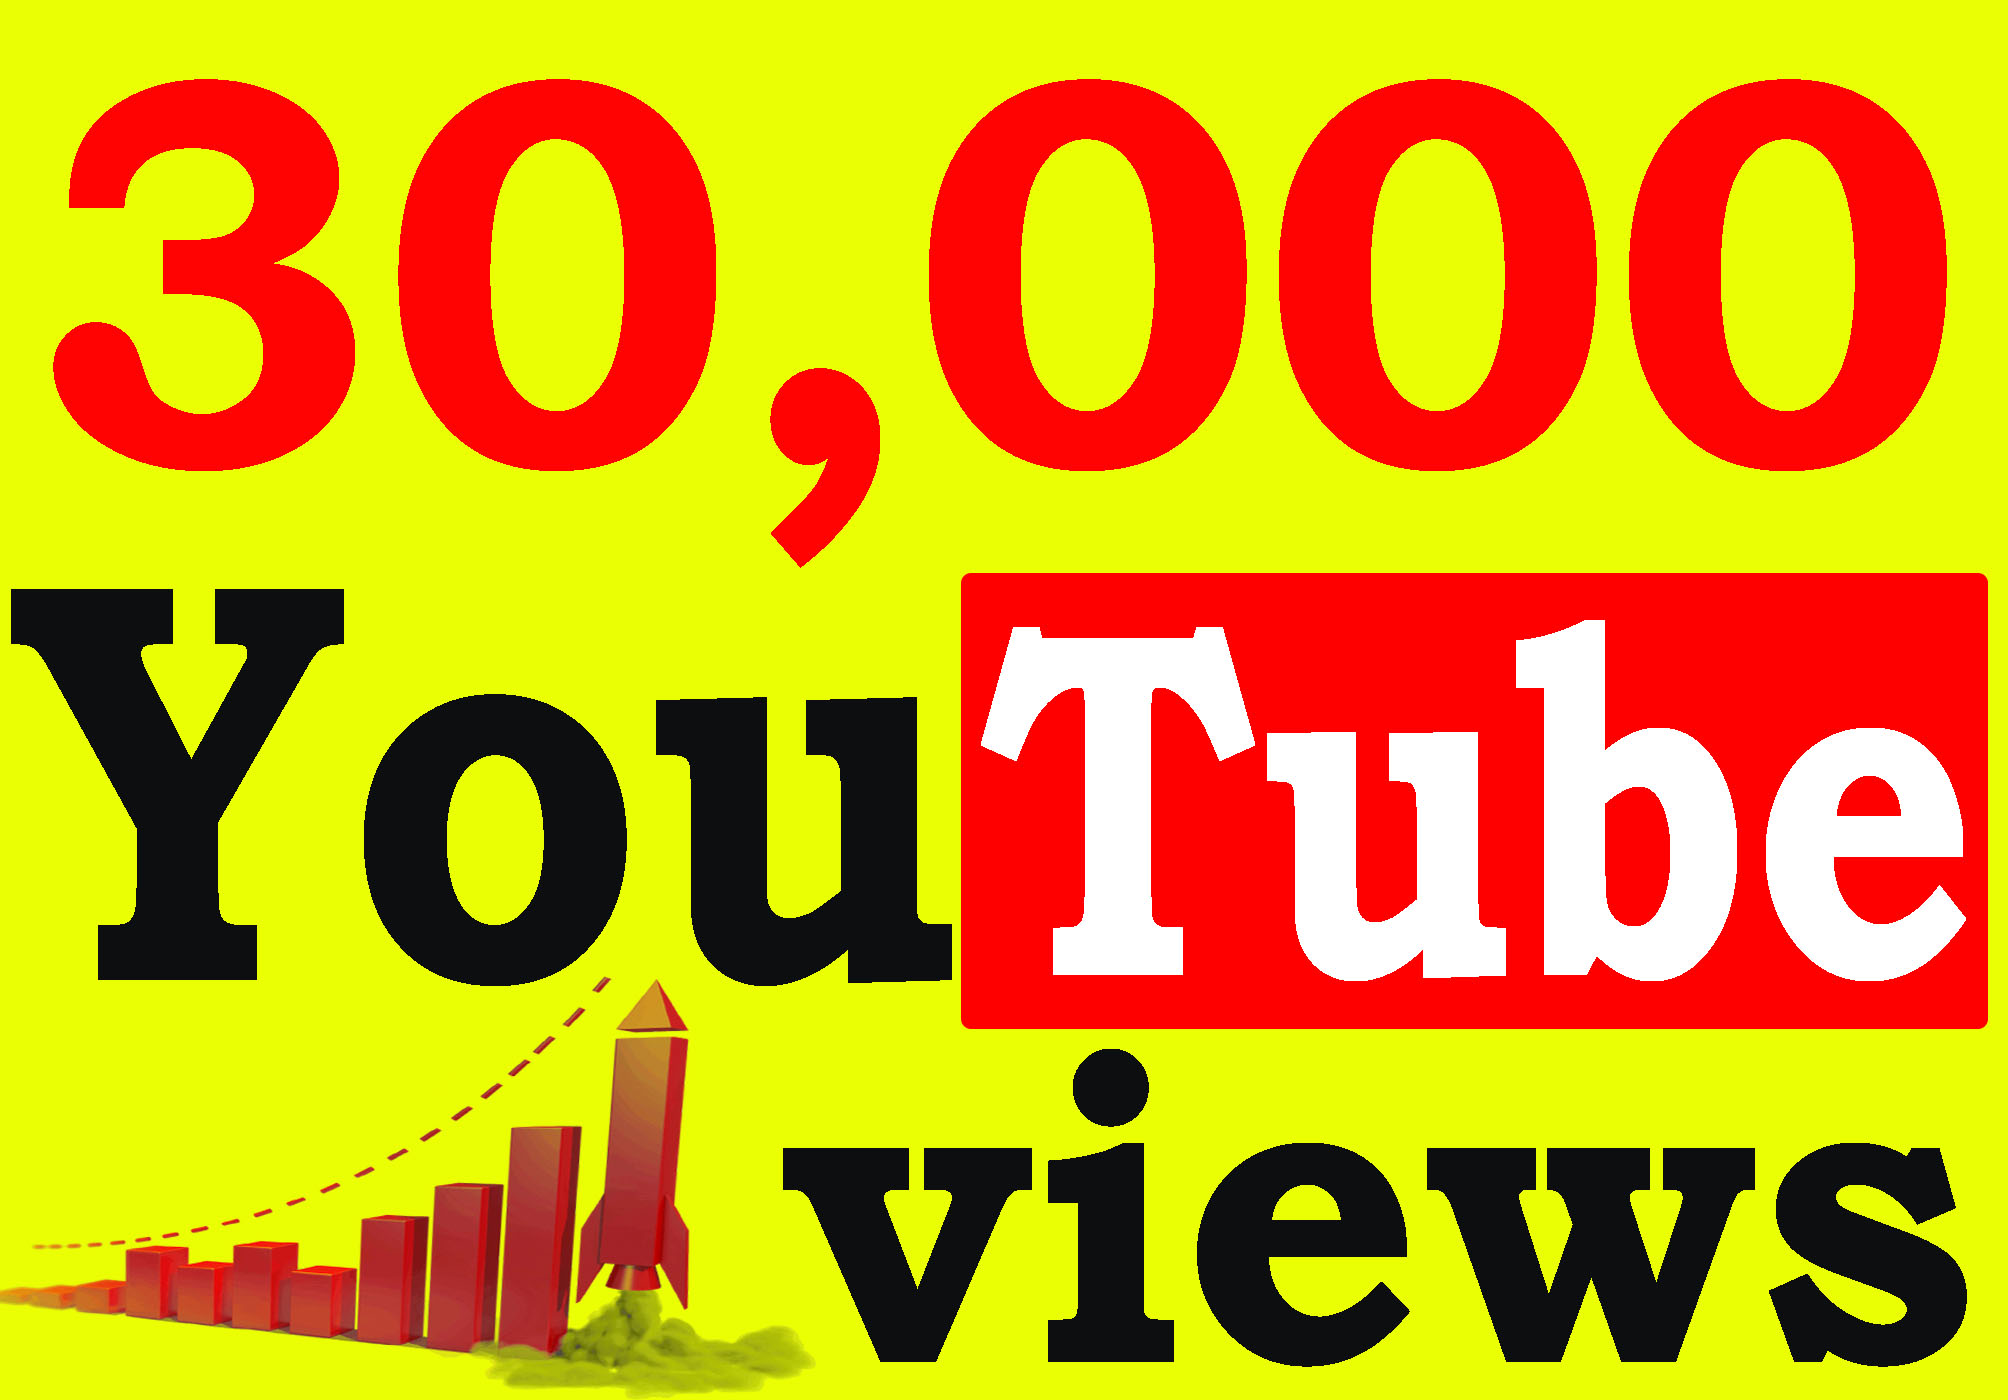 Provide you 30,000 High Quality youtube Views 100% safely.